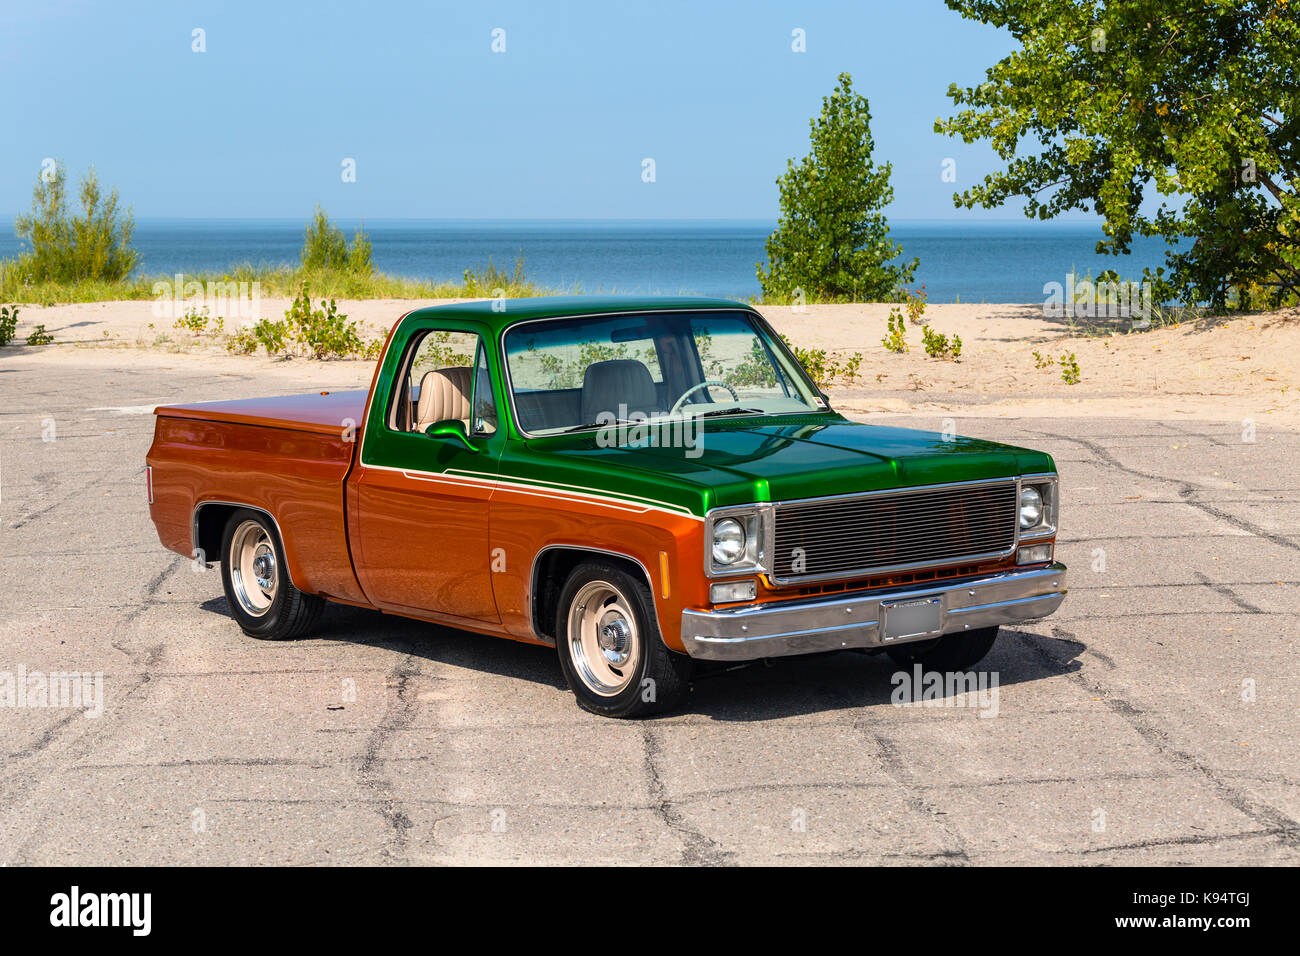 1975 GMC  Siera Grande Two Tone Pickup Truck - Stock Image